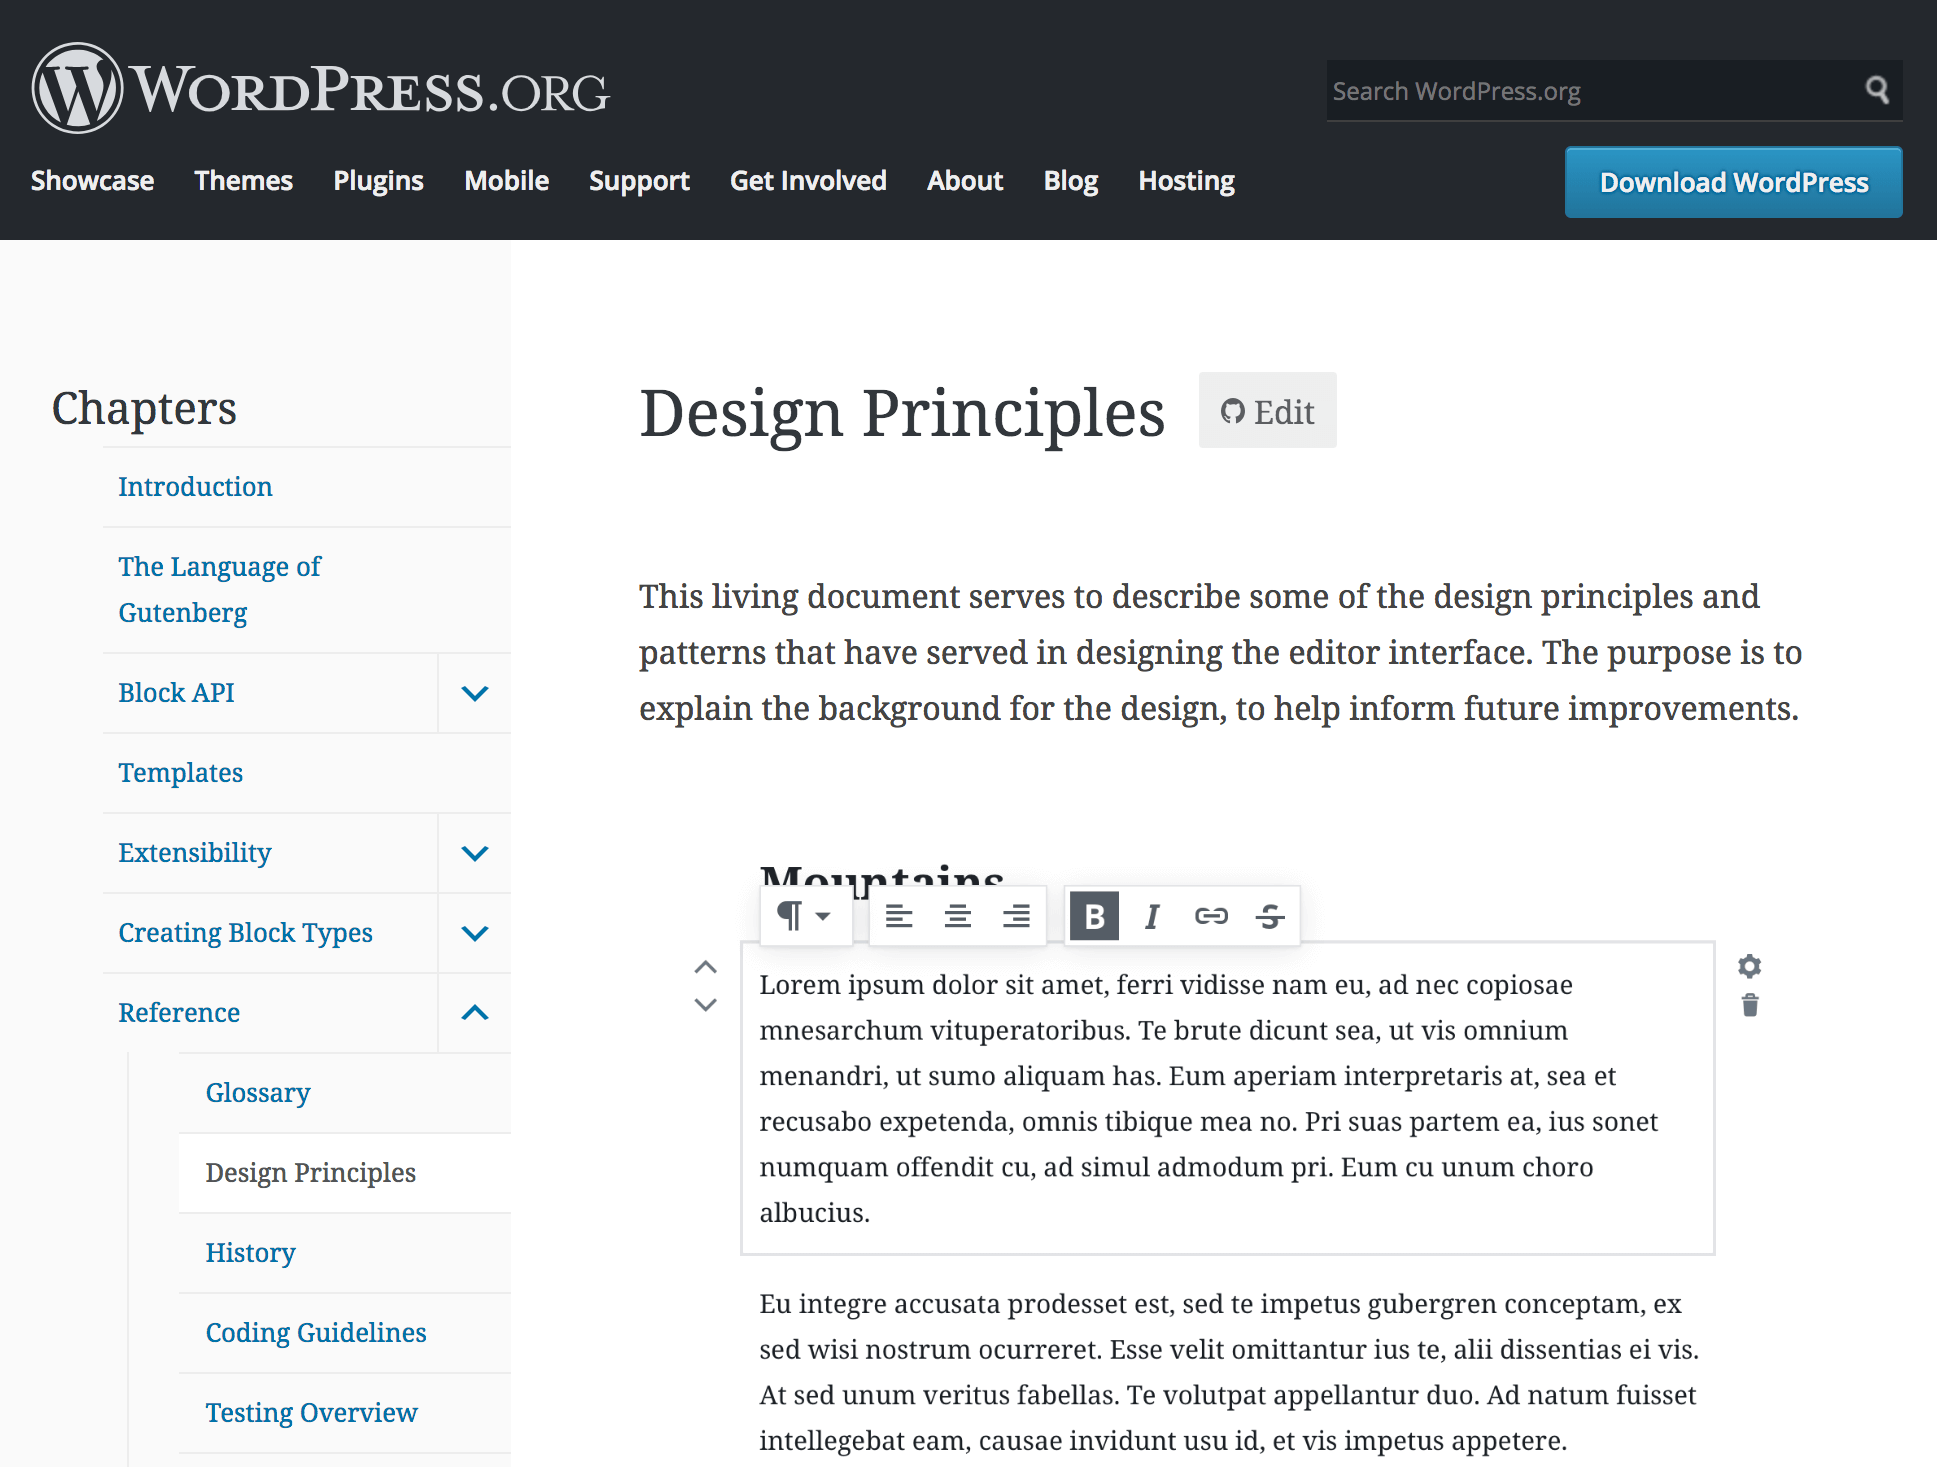 WordPress' Design Principles page.